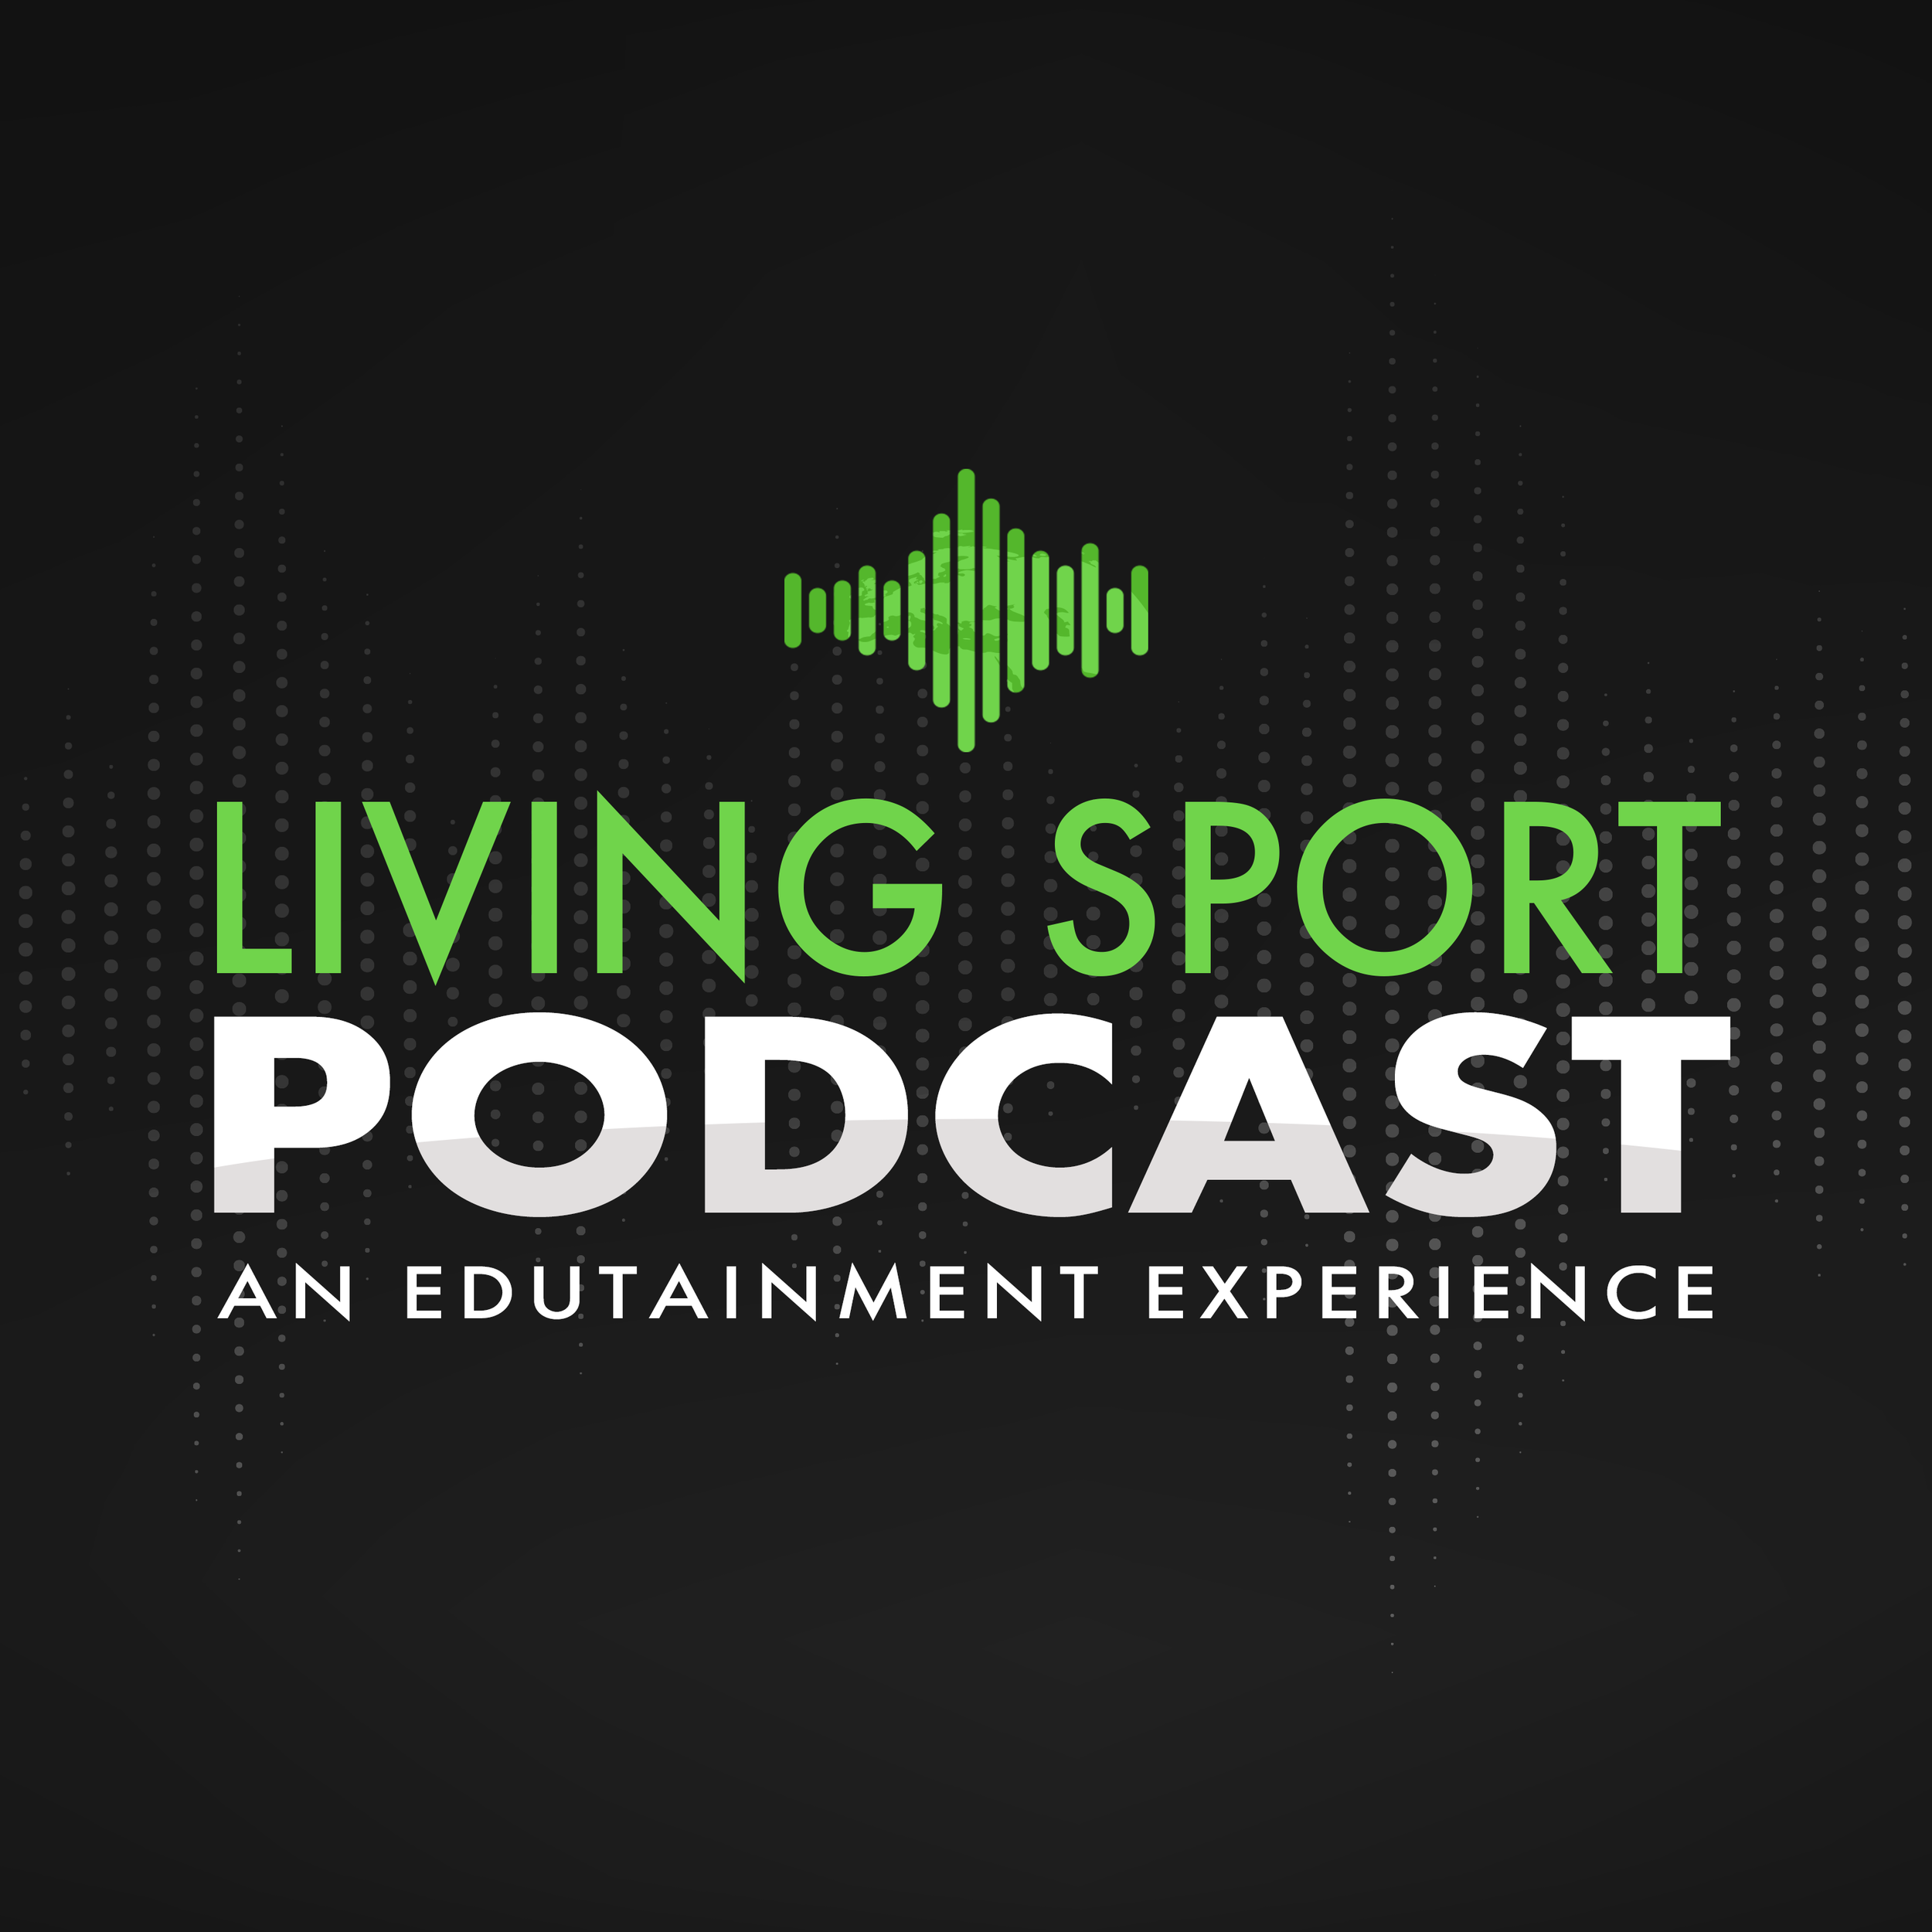 Living Sport Podcast Cover Photo.png